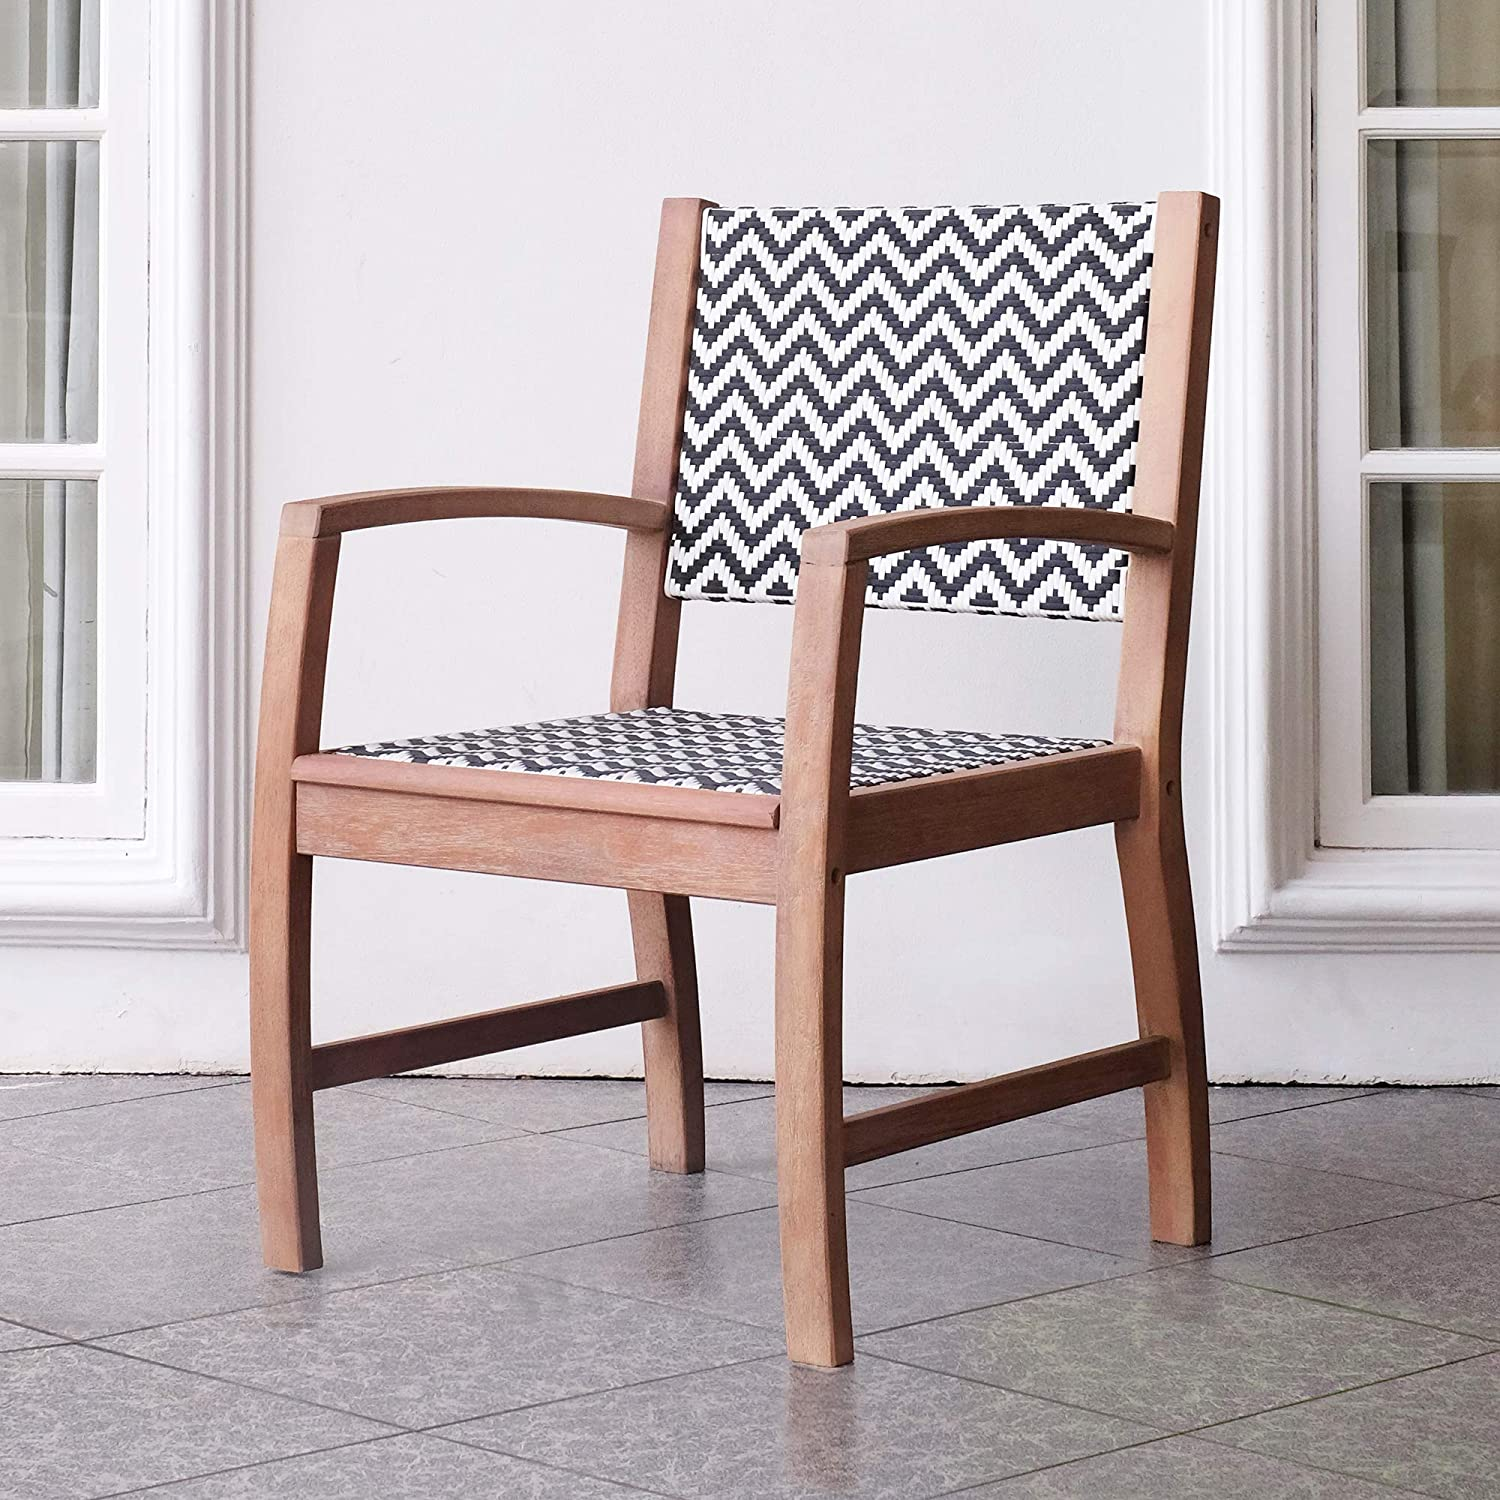 Cambridge-Casual 121155 Willow, Dining Chair, Weathered